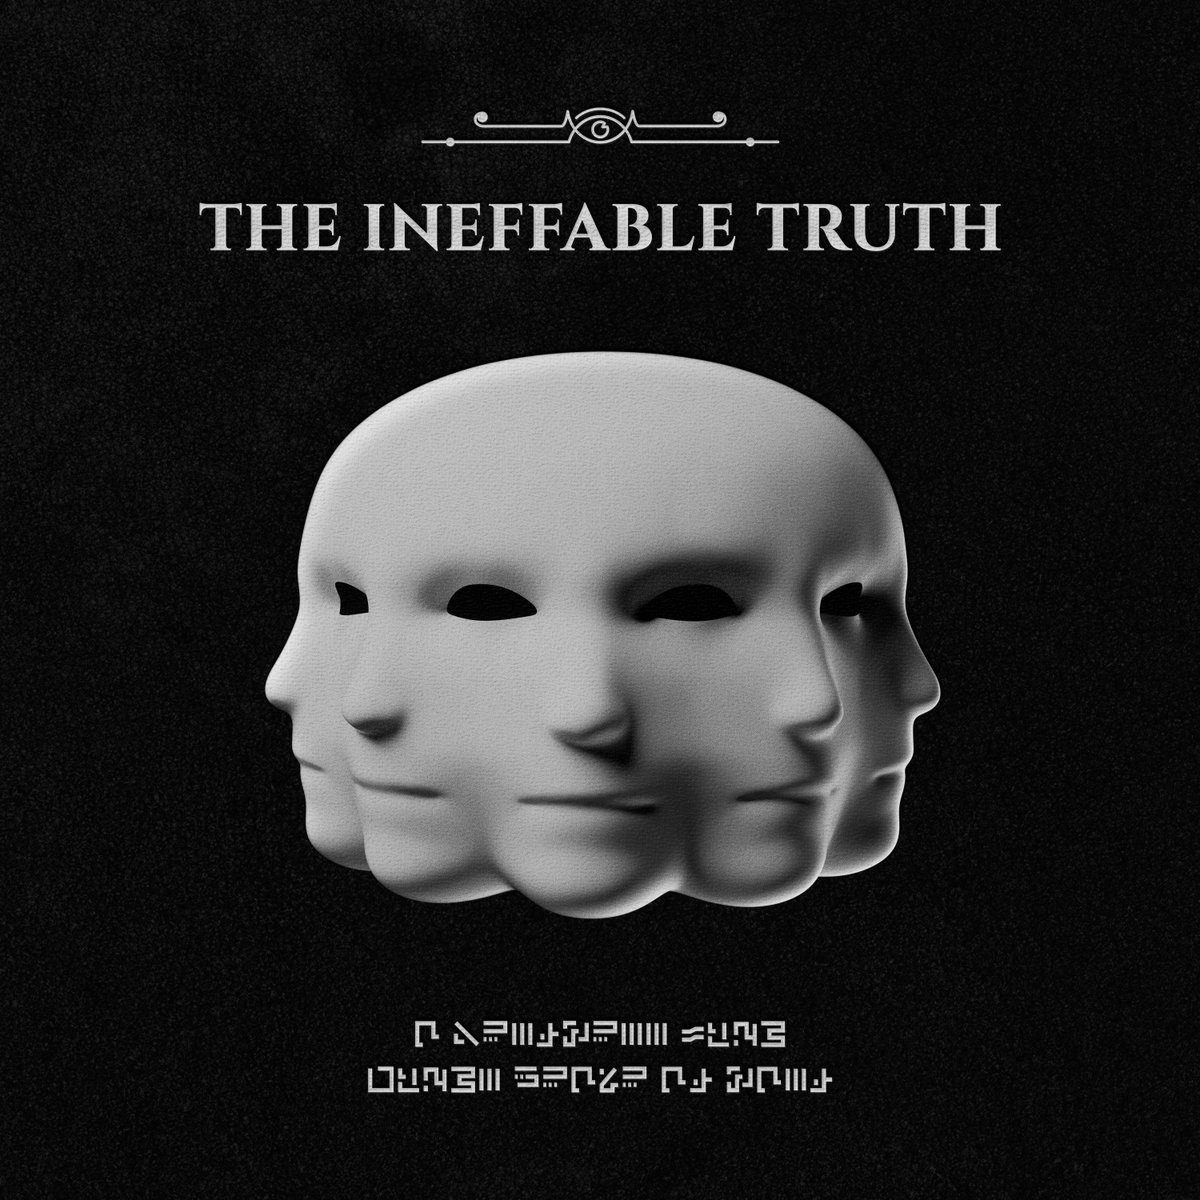 Image result for g jones the ineffable truth high quality album cover